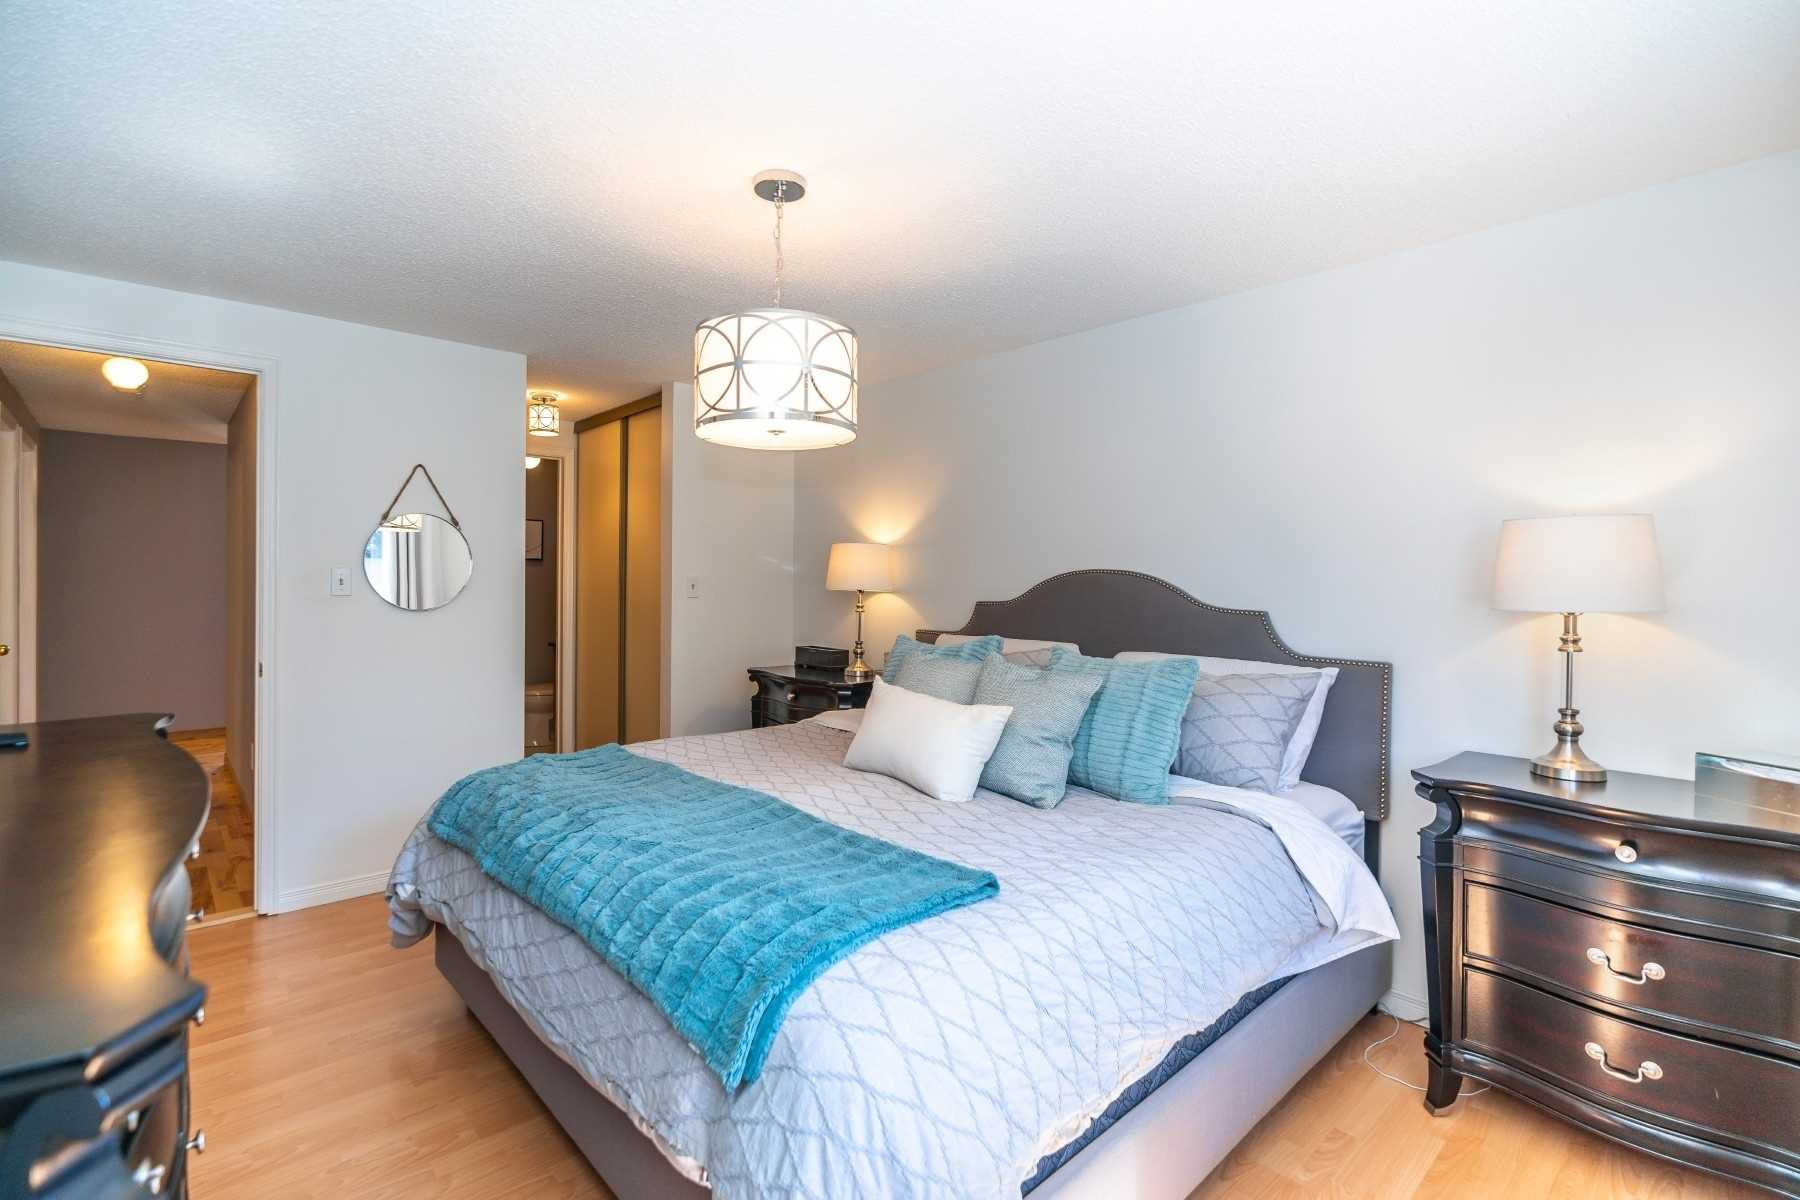 Photo 23: Photos: 1153 Snowberry Court in Oshawa: Pinecrest House (2-Storey) for sale : MLS®# E4794796